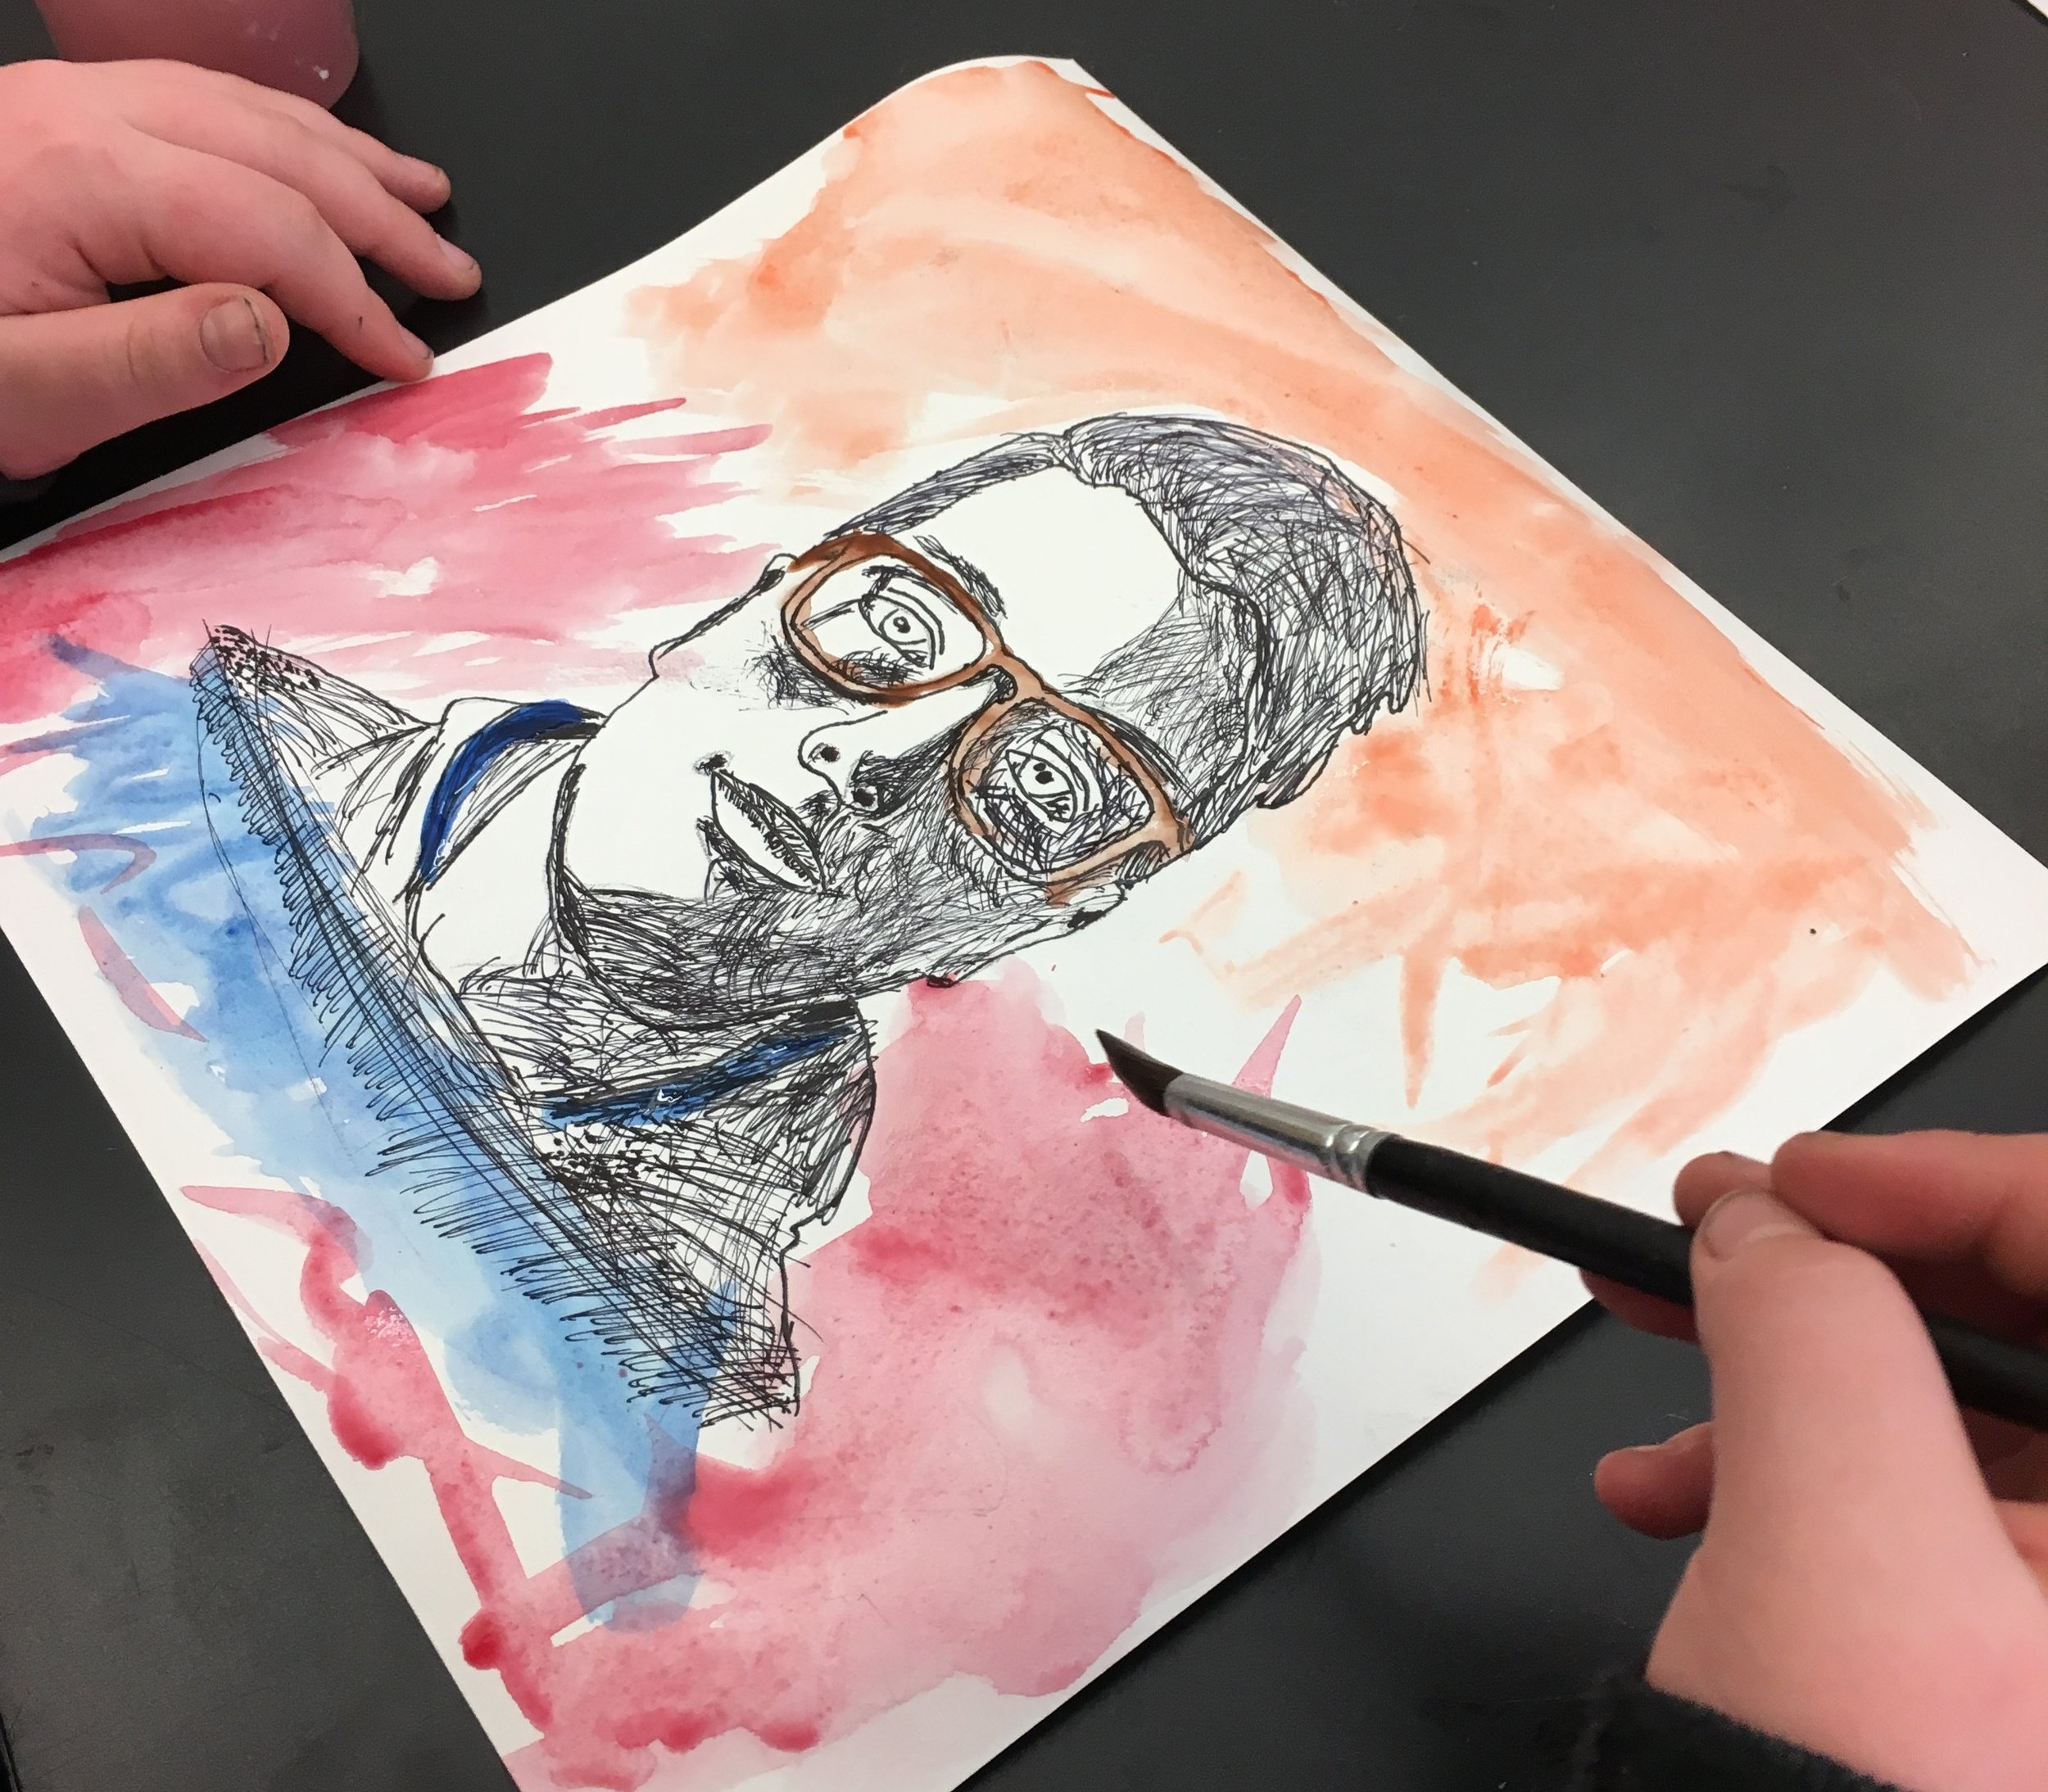 Self Portraits - 6th Grade Students created self portraits using value with line and expressive watercolor techniques. Students began by tracing the outline of a black and white photos of themselves and then added value using line variation. Students were encouraged to not use pencil for the line making and take the risk with sharpie. Students then used a variety of watercolor techniques to bring the portrait to life.